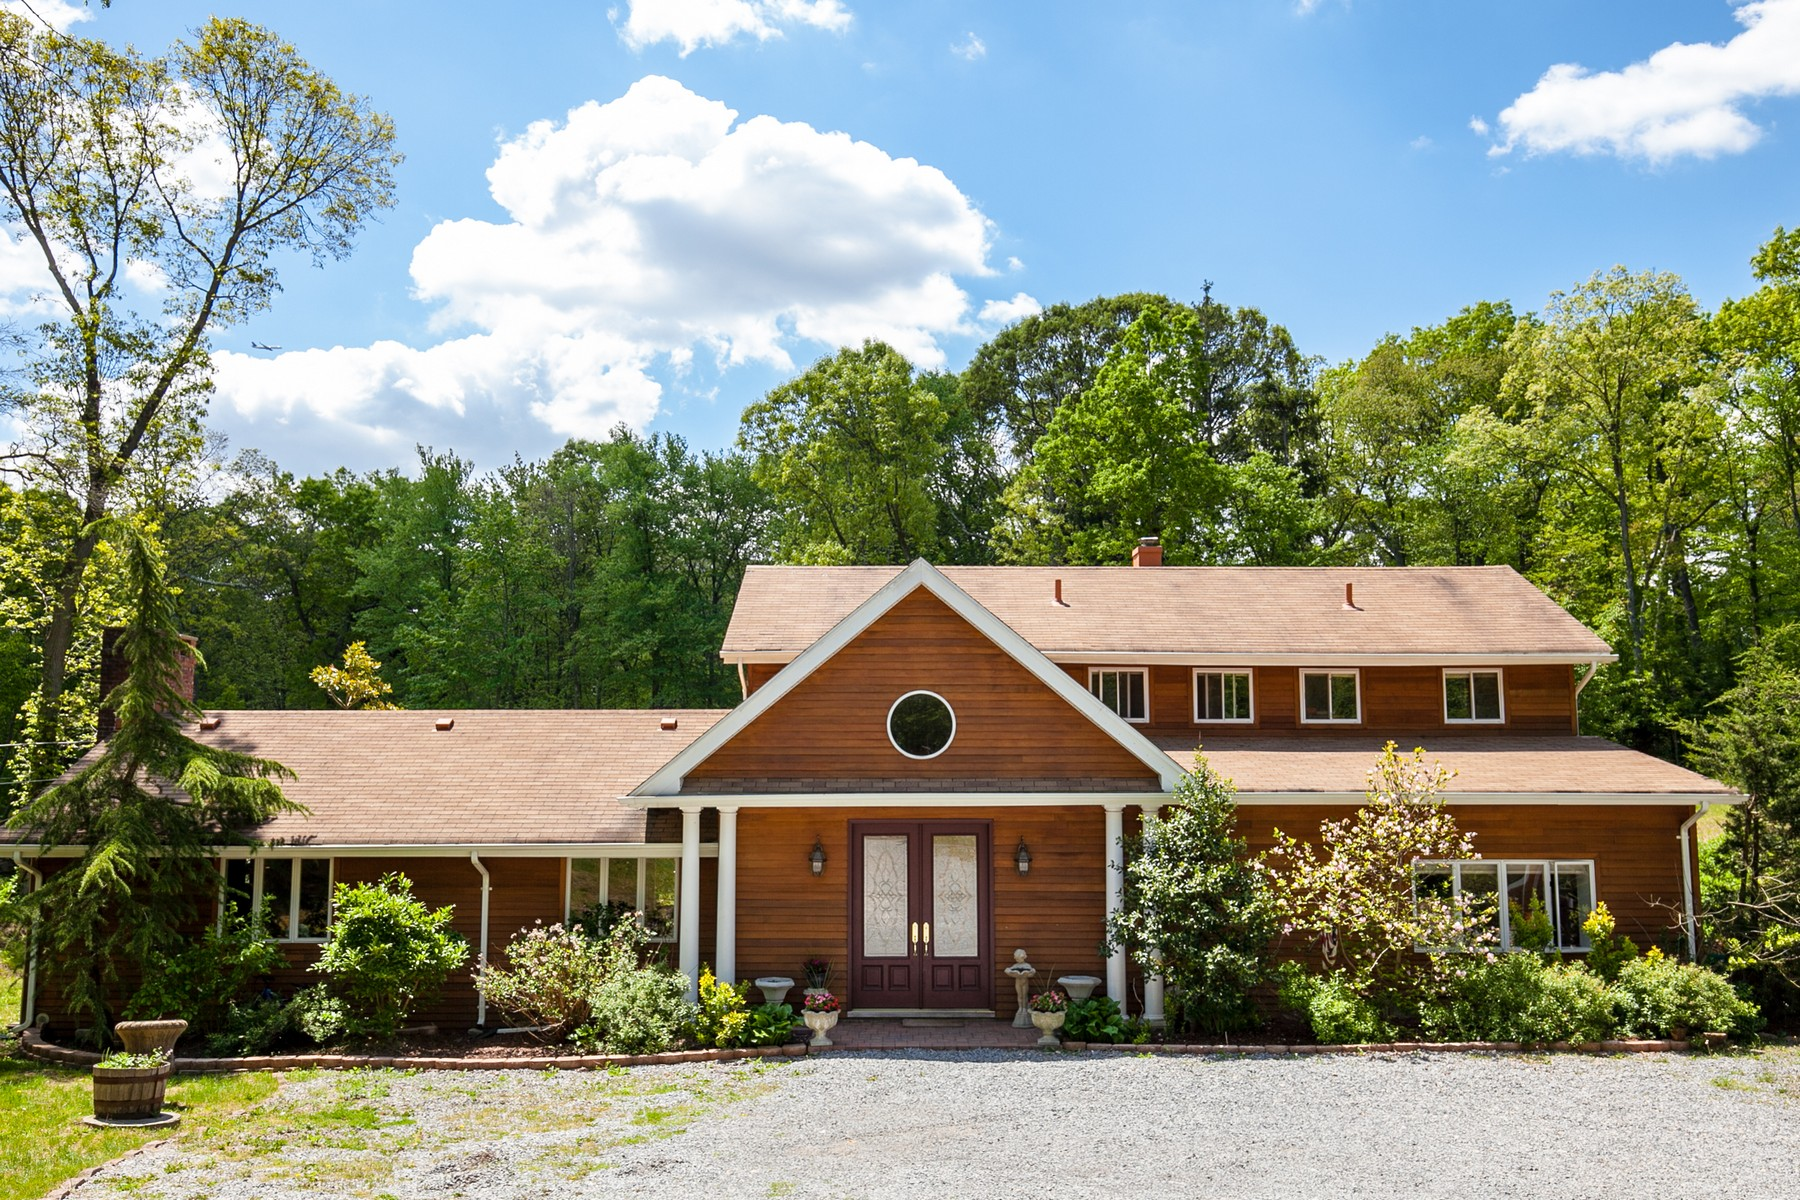 Single Family Home for Sale at Colonial 1968 Knollwood Rd Muttontown, New York, 11791 United States